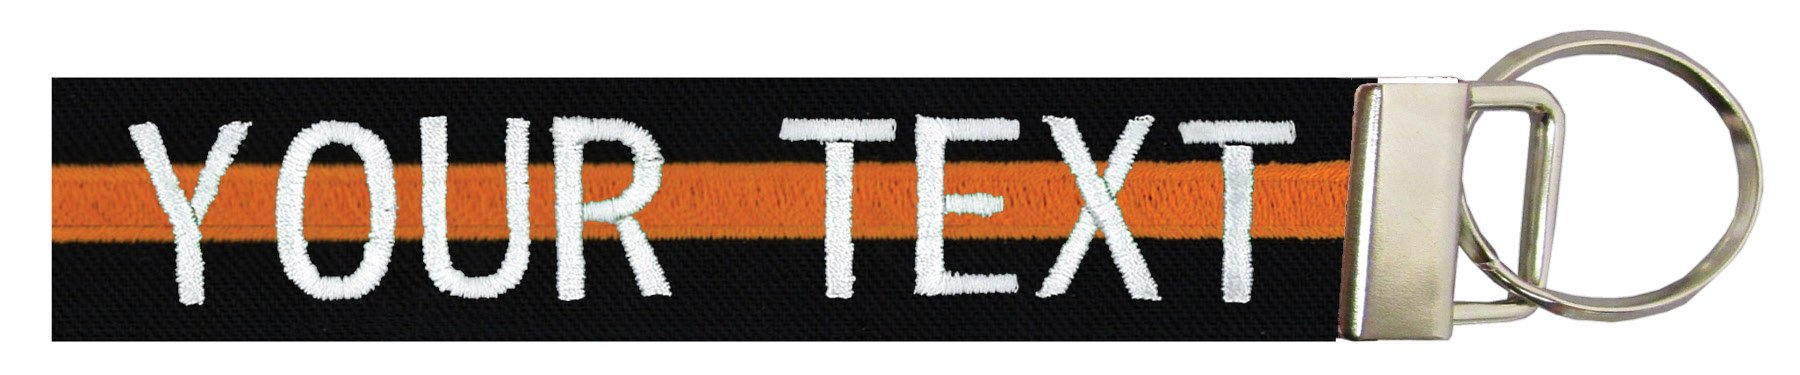 Northern Safari Custom Name Tape Material Luggage and Crate Tags Over 50 Fabrics. Made in The U.S.A. Black Fabric/Orange Line, 6 Inch 2-Line Text and Logo by Northern Safari